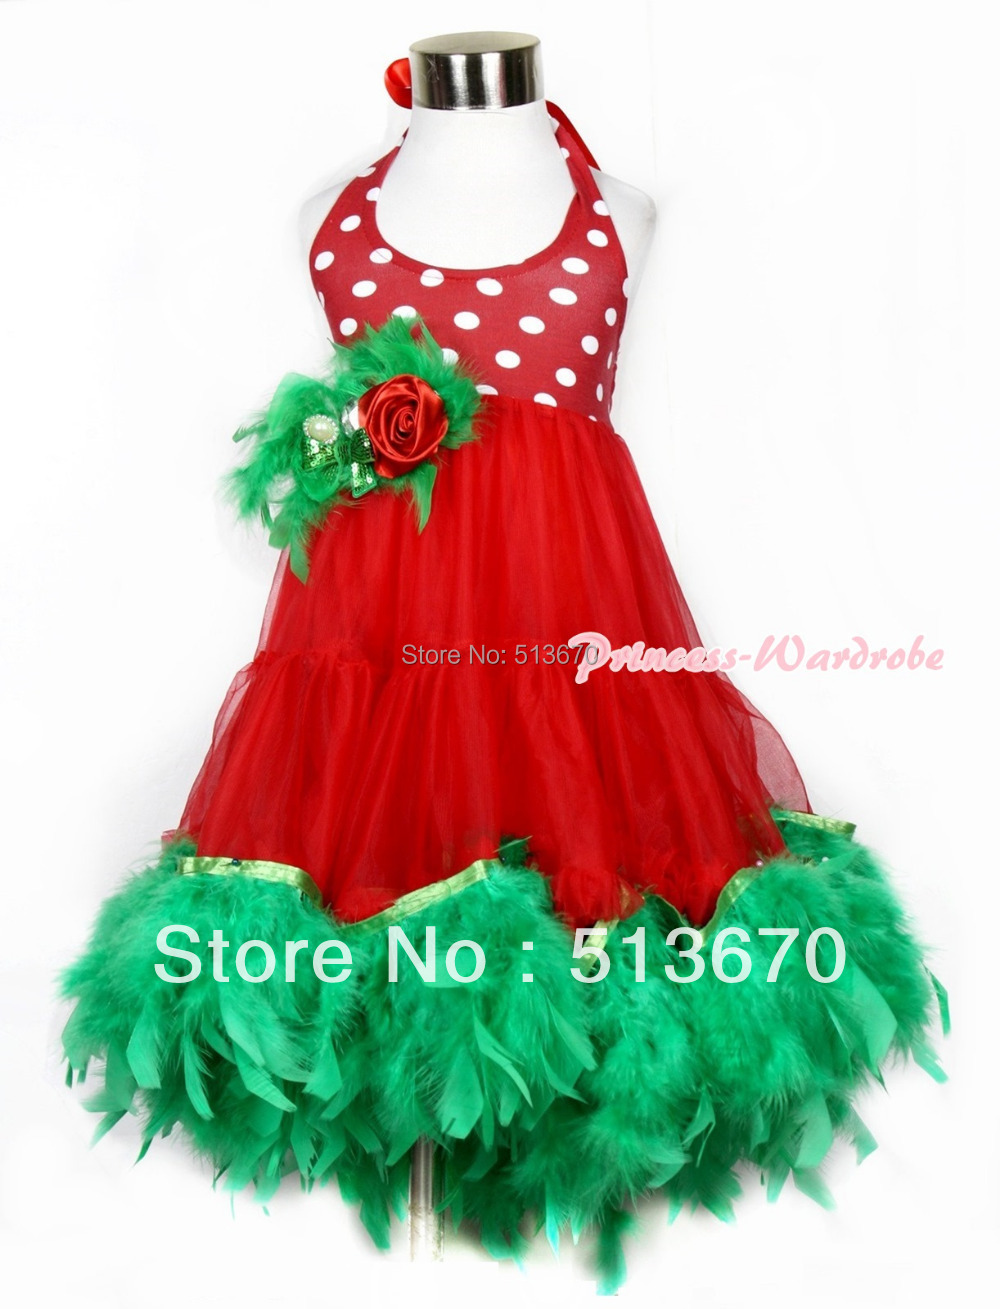 Xmas Red White Polka Dots ONE-PIECE Petti Dress with Kelly Green Posh Feather MALP26 red white polka